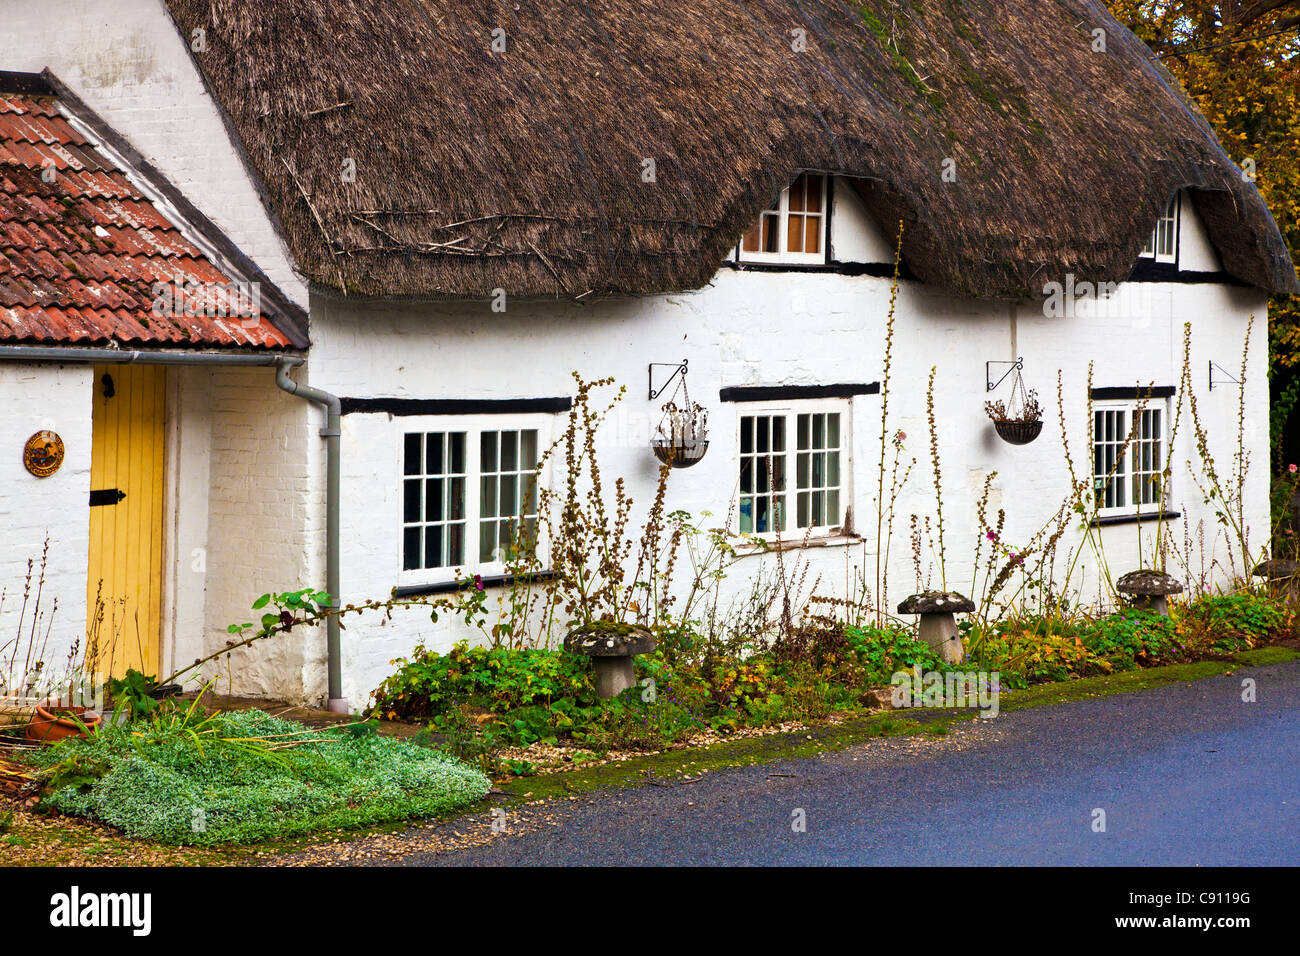 A typical English thatched country cottage in the Wiltshire village of Clyffe Pypard, England, UK - Stock Image